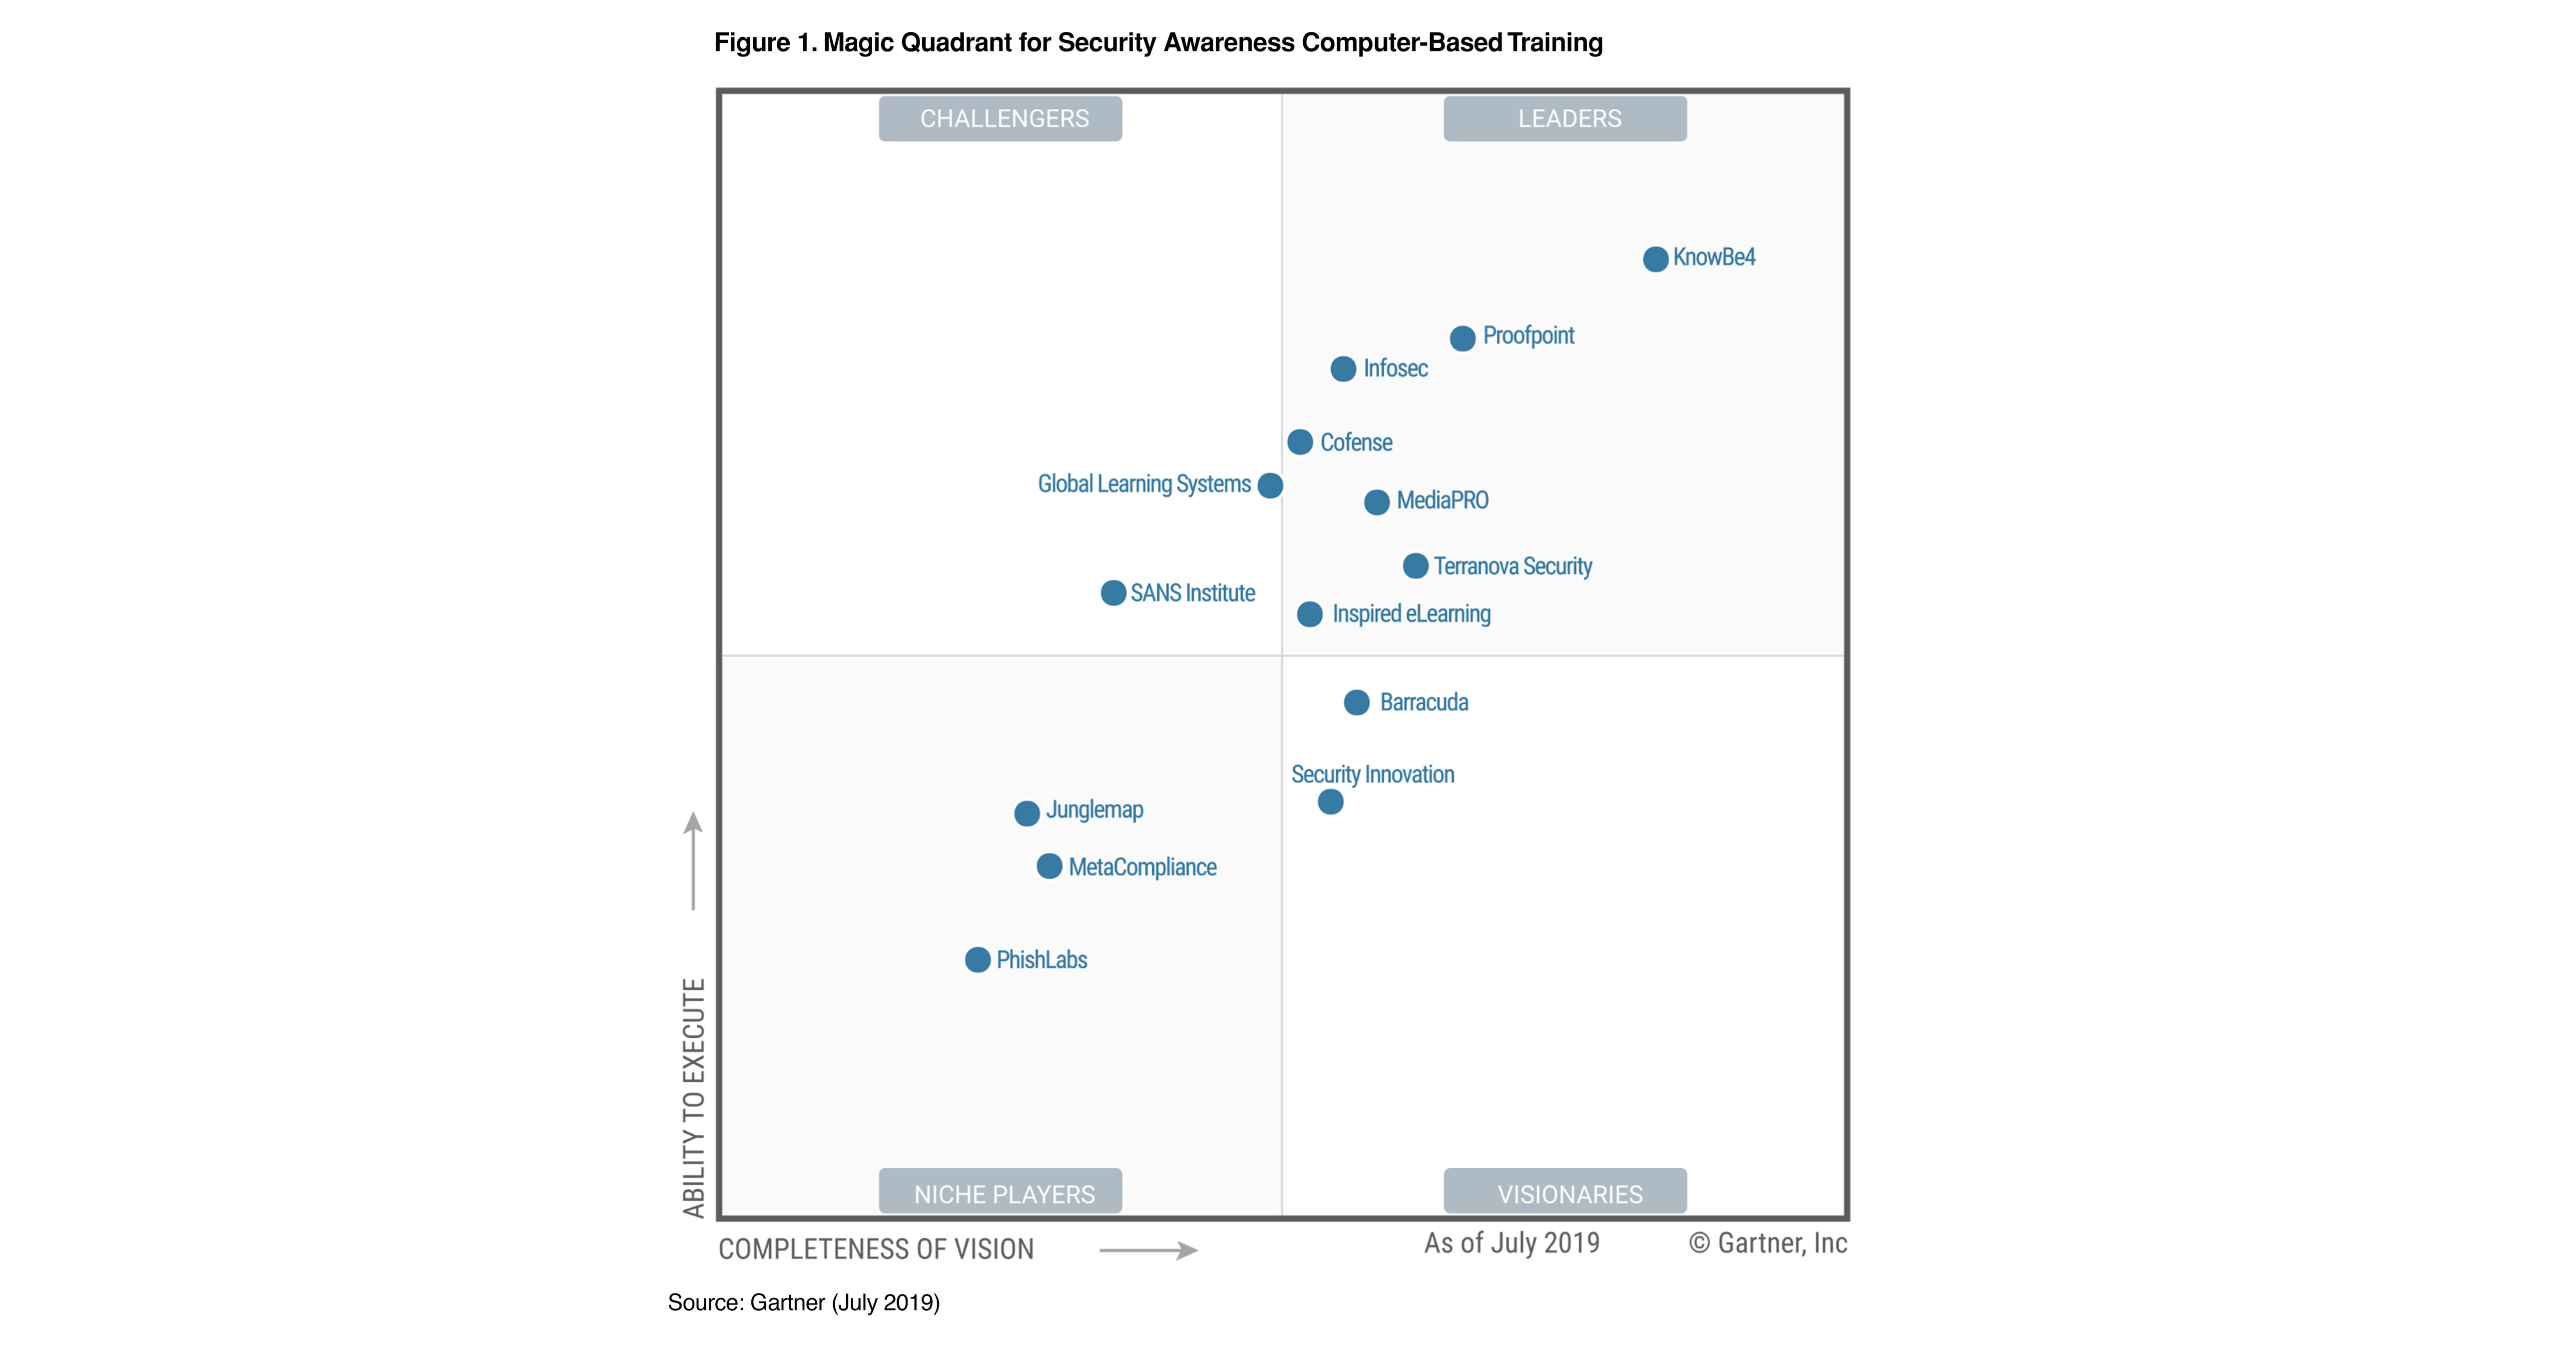 KnowBe4 Positioned as a Leader in the Gartner Magic Quadrant